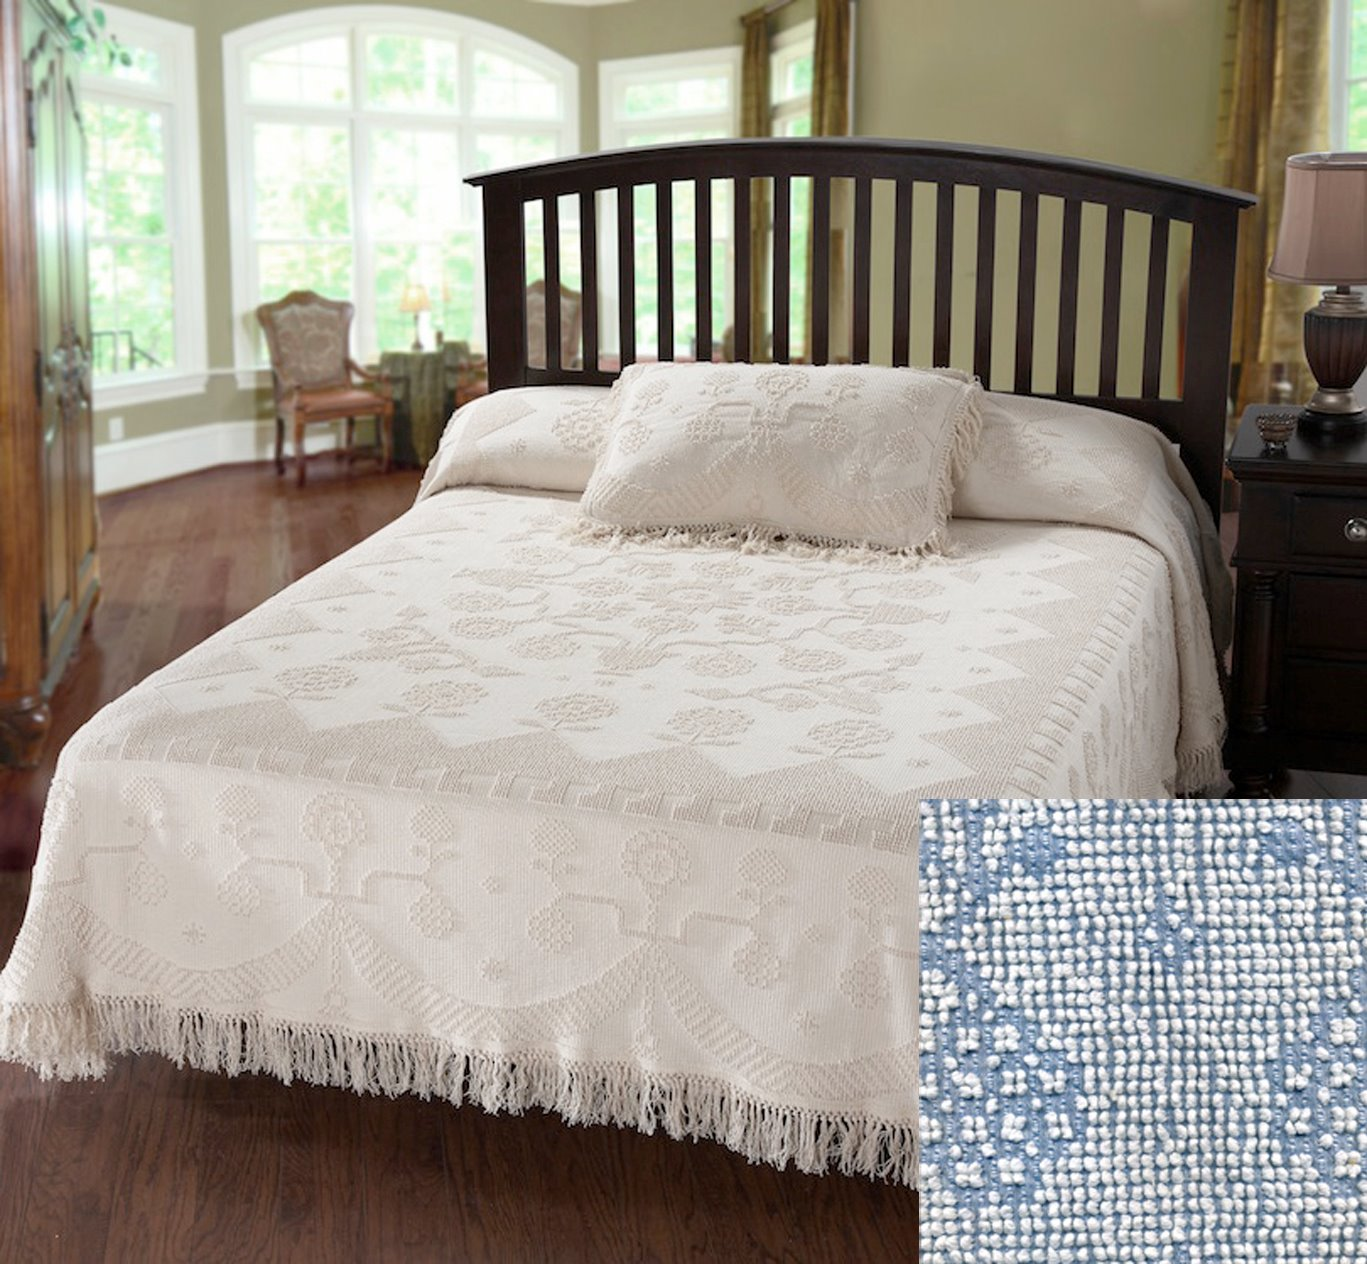 George Washington Bedspread Full Blue